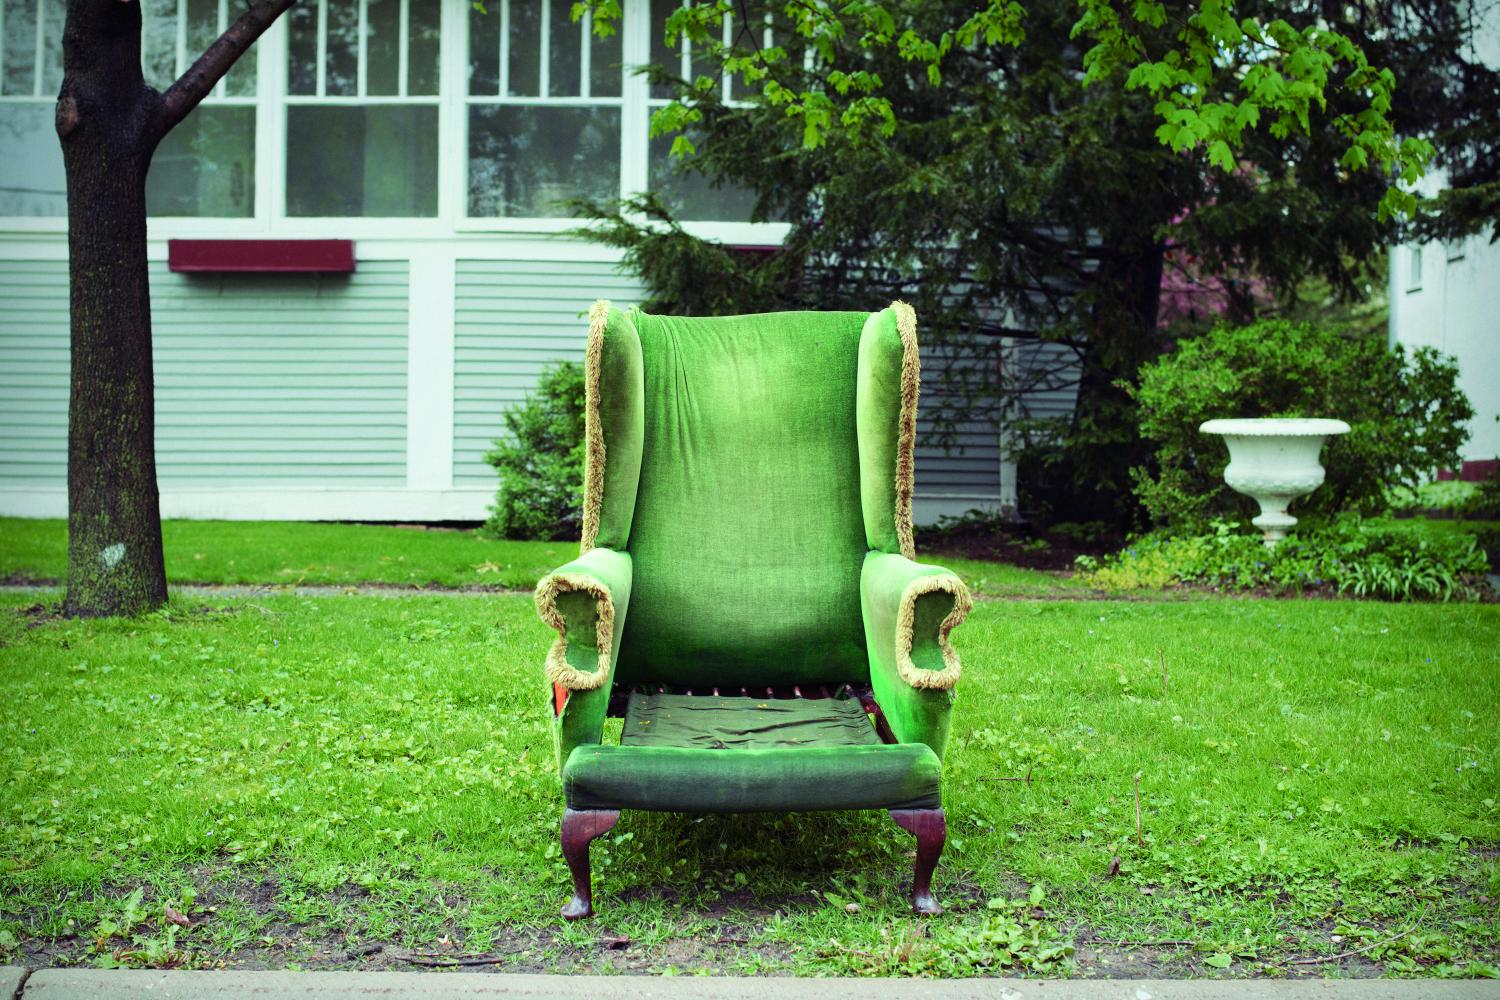 Photograph of a green chair in a driveway